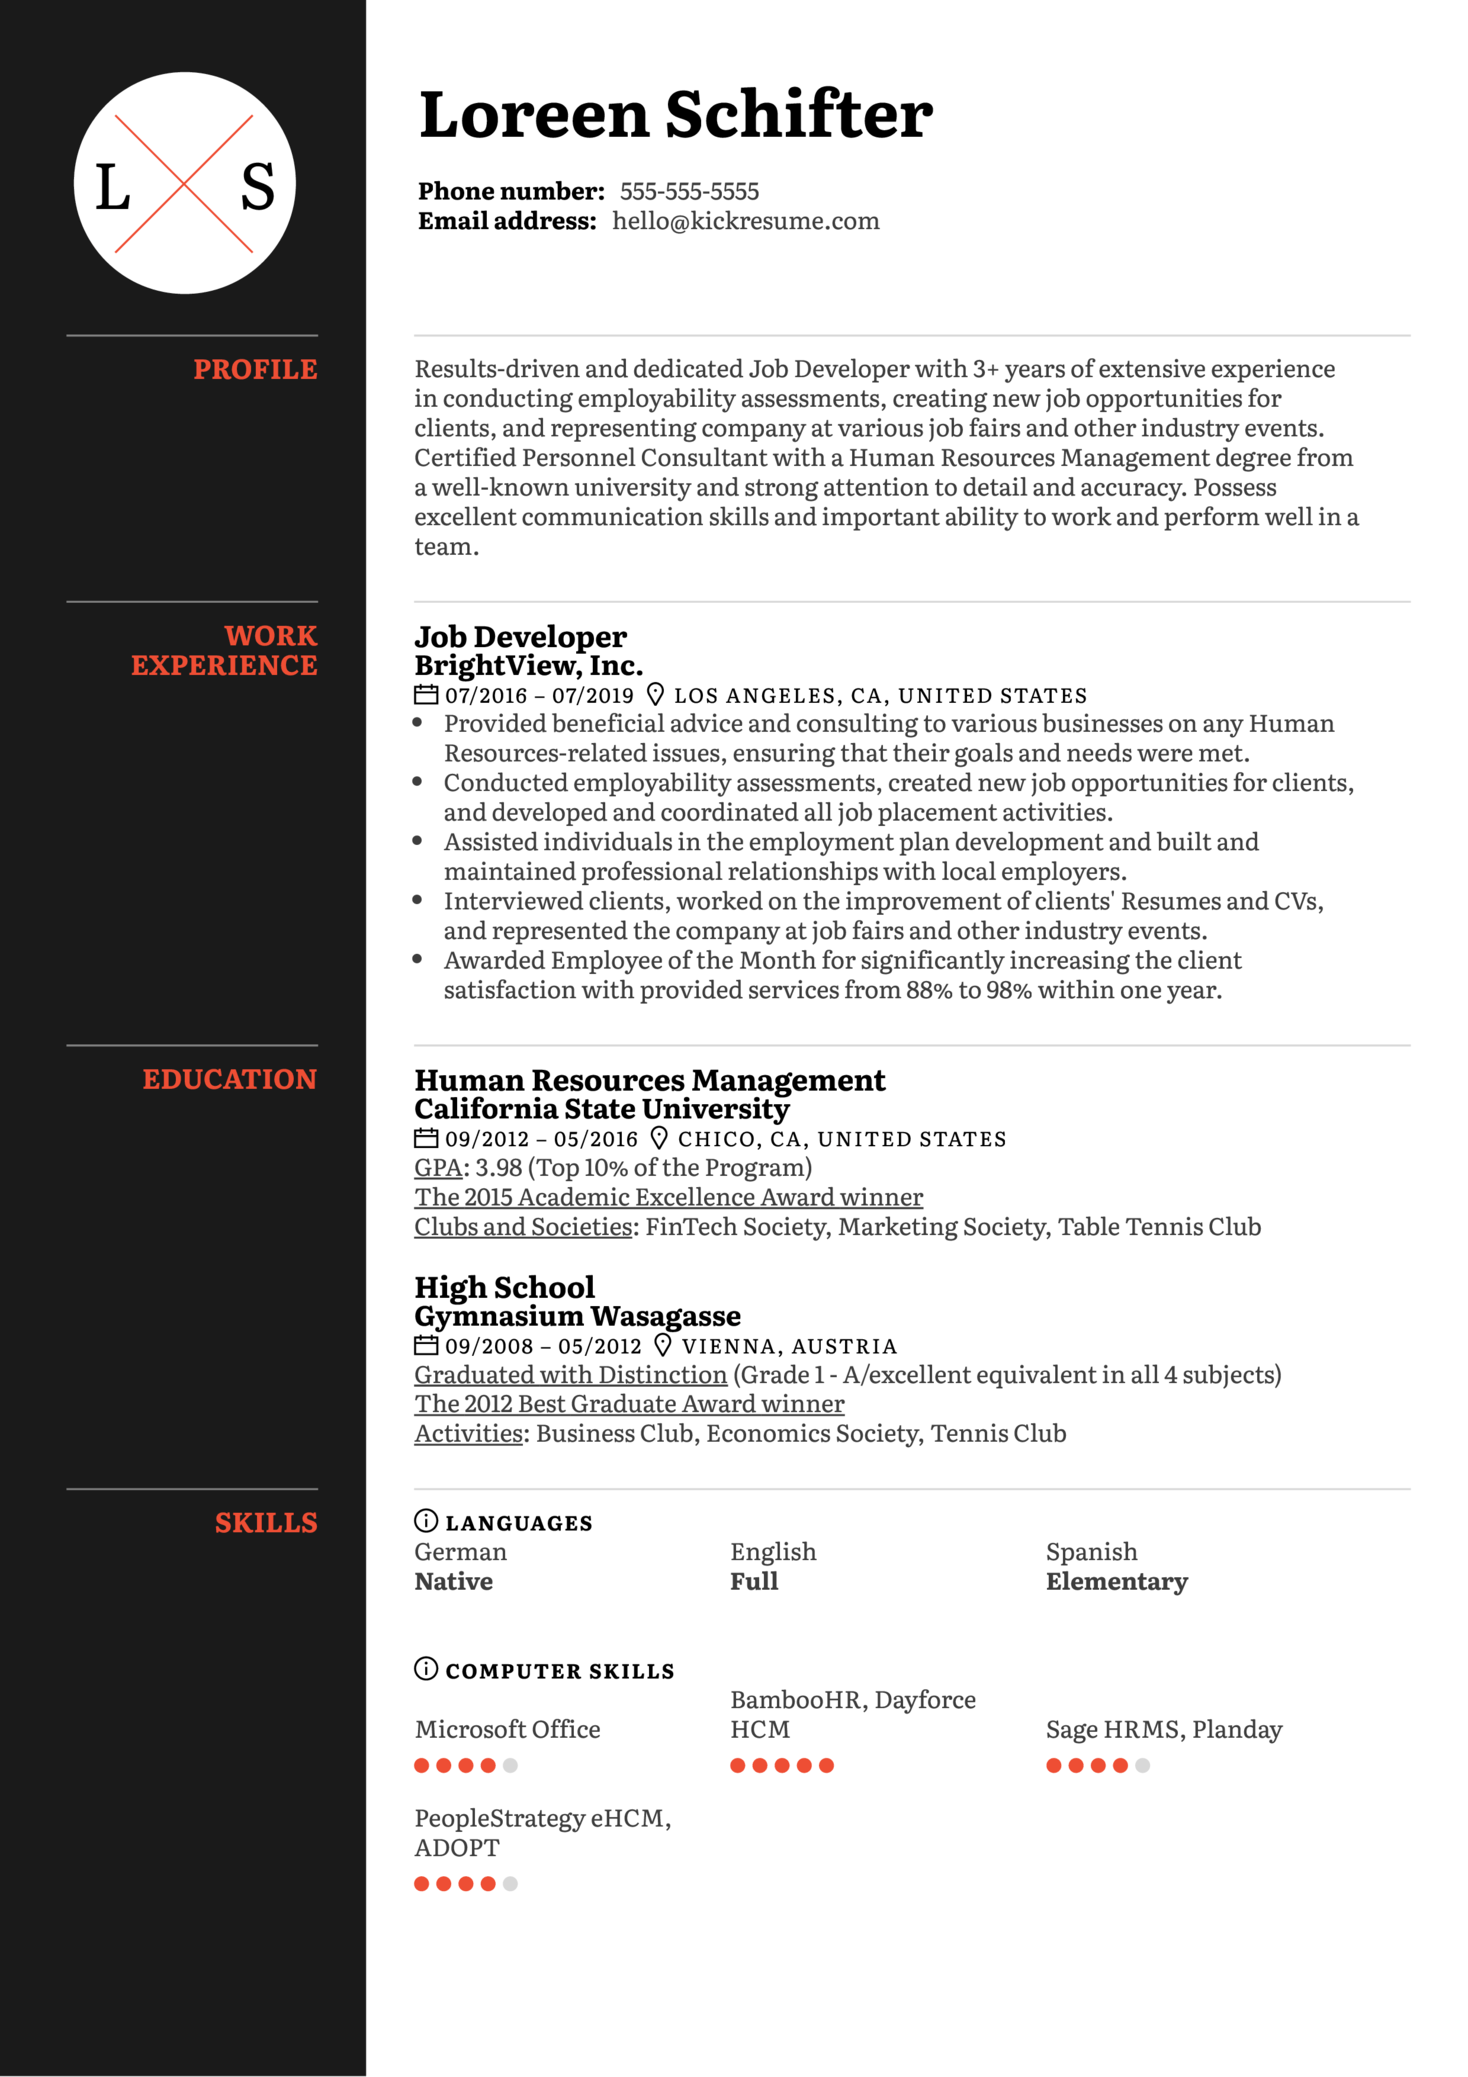 Job Developer Resume Sample (časť 1)